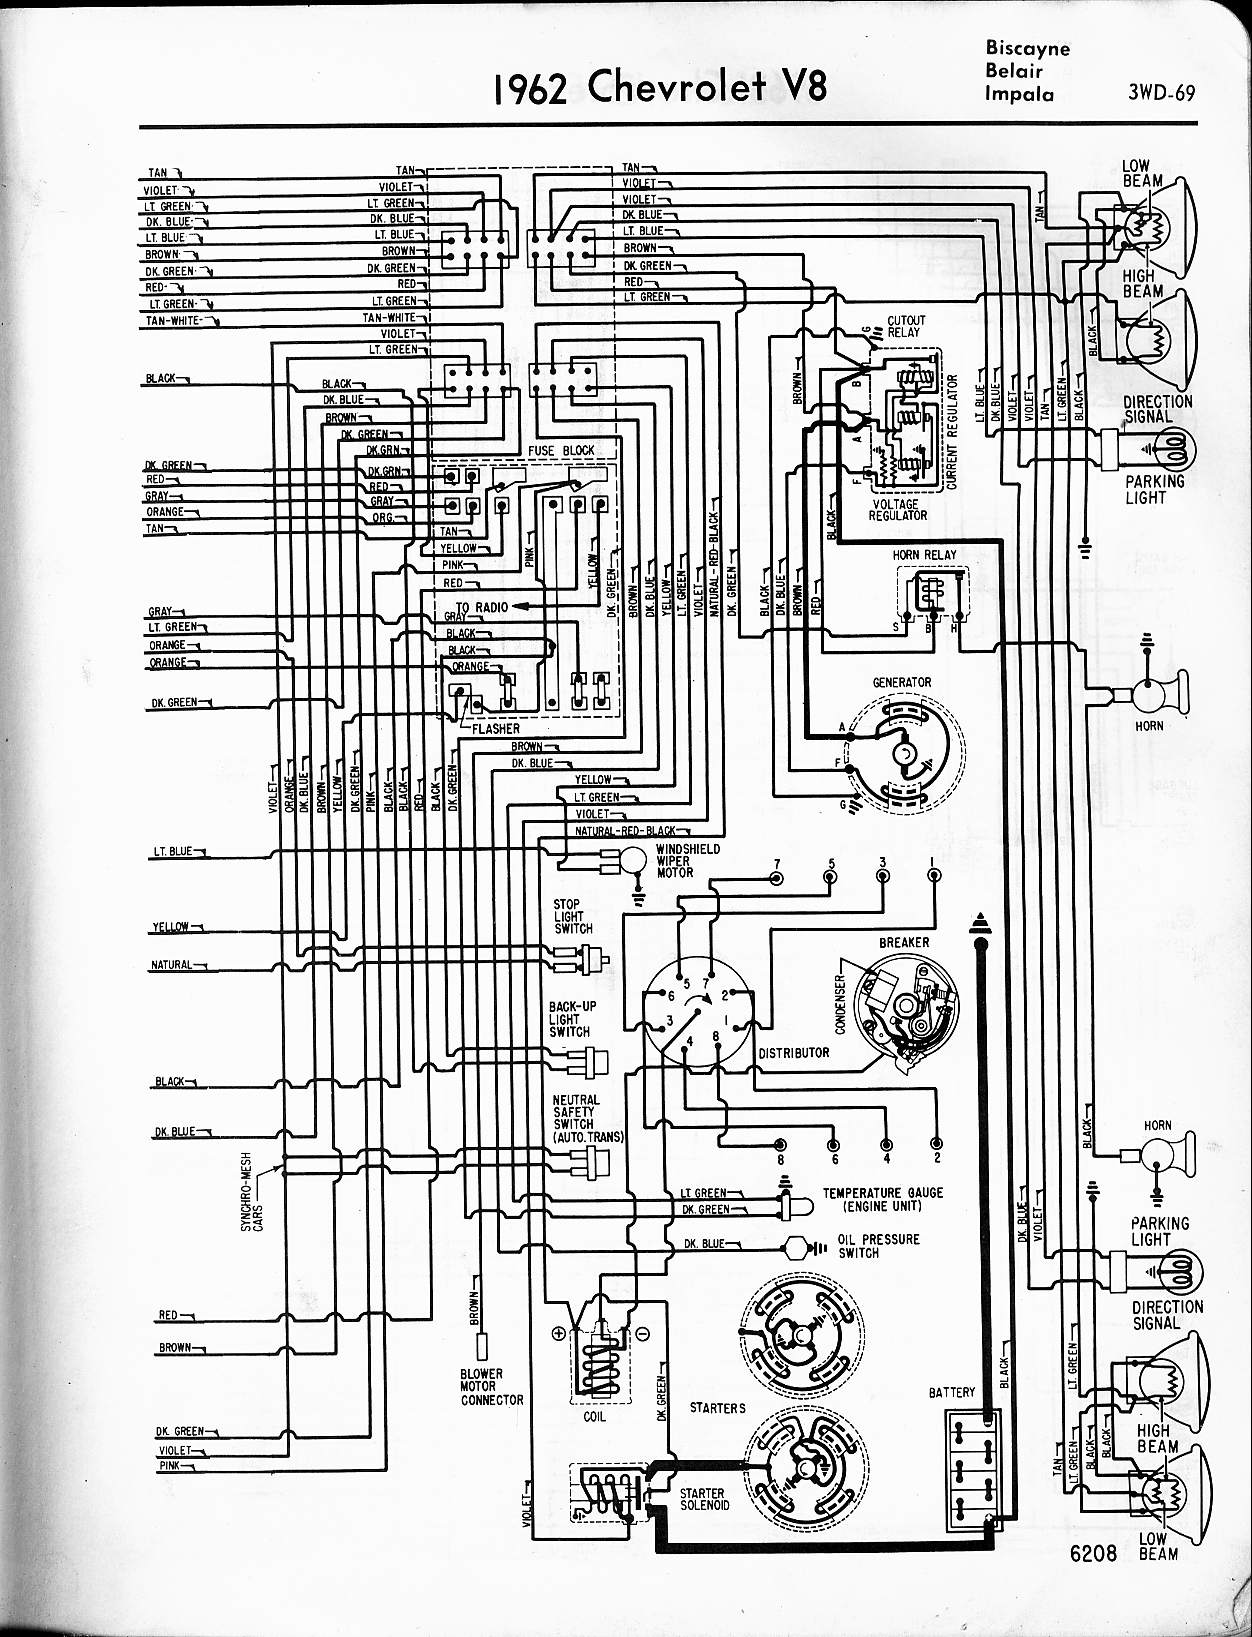 1967 Chevy Impala Wiring Harness Diagram - Wiring Diagrams Thumbs on 1970 impala wiring harness, 1964 impala ignition wiring diagram, 2008 impala wiring harness, 1965 gto wiring harness, 1964 impala alternator wiring, 63 impala wiring harness, 1967 mustang wiring harness, 1961 impala wiring harness, 1969 impala wiring harness, 1964 impala dash harness, 1965 impala wiring harness, 1964 mustang wiring harness, 1964 gto wiring harness, 1966 impala wiring harness, 2000 impala wiring harness, 61 impala wiring harness, 1963 impala wiring harness, 1967 impala wiring harness, 2001 impala wiring harness, 64 impala wiring harness,